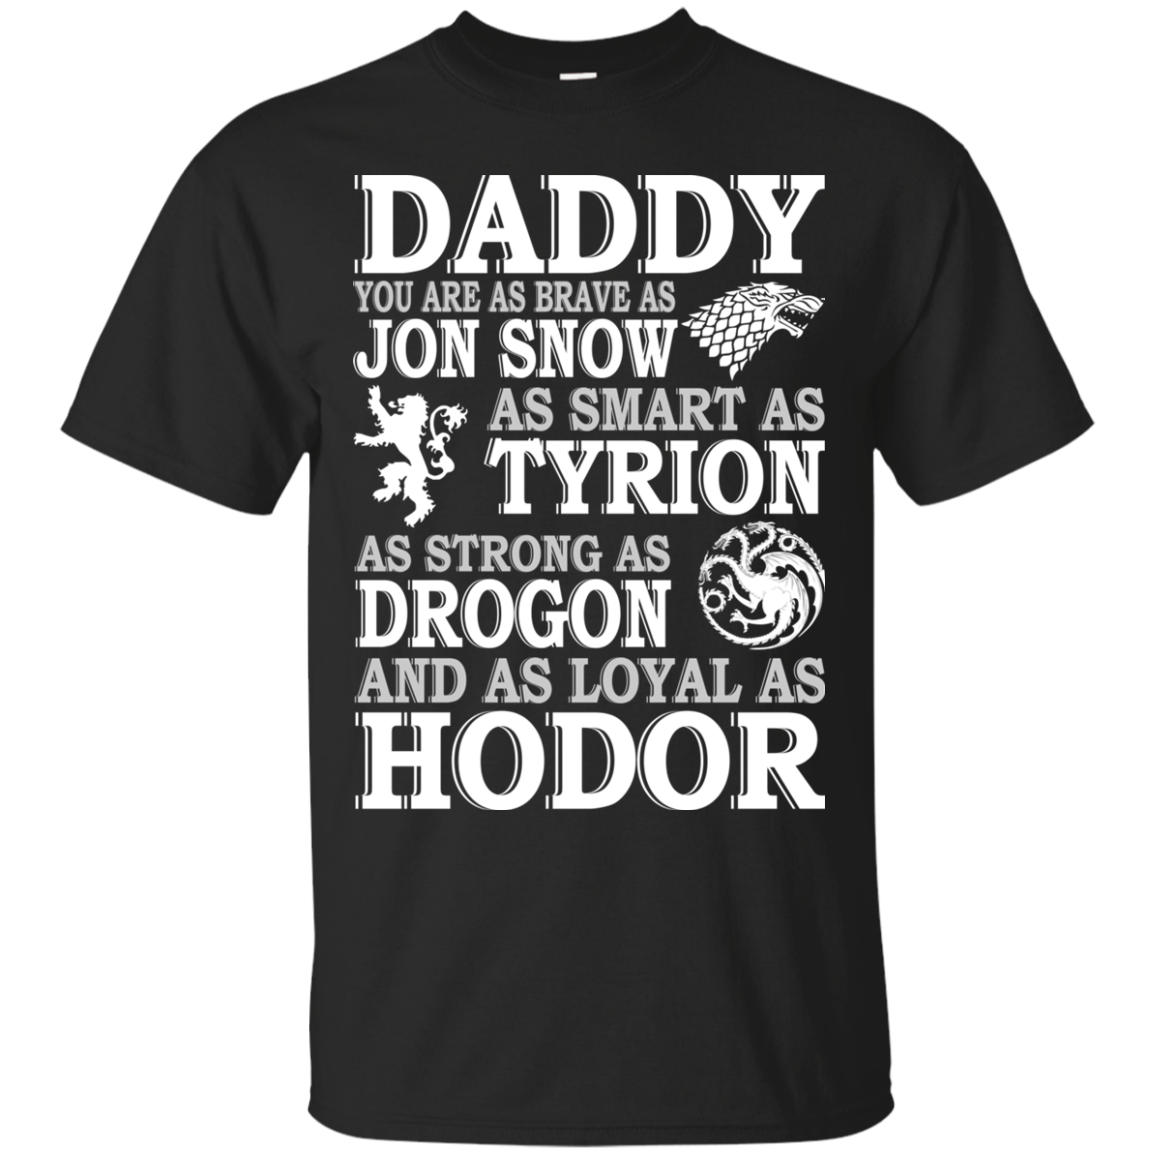 4c016e91 Game Of Thrones Shirts Jon Snow - Ortsplanungsrevision Stadt Thun